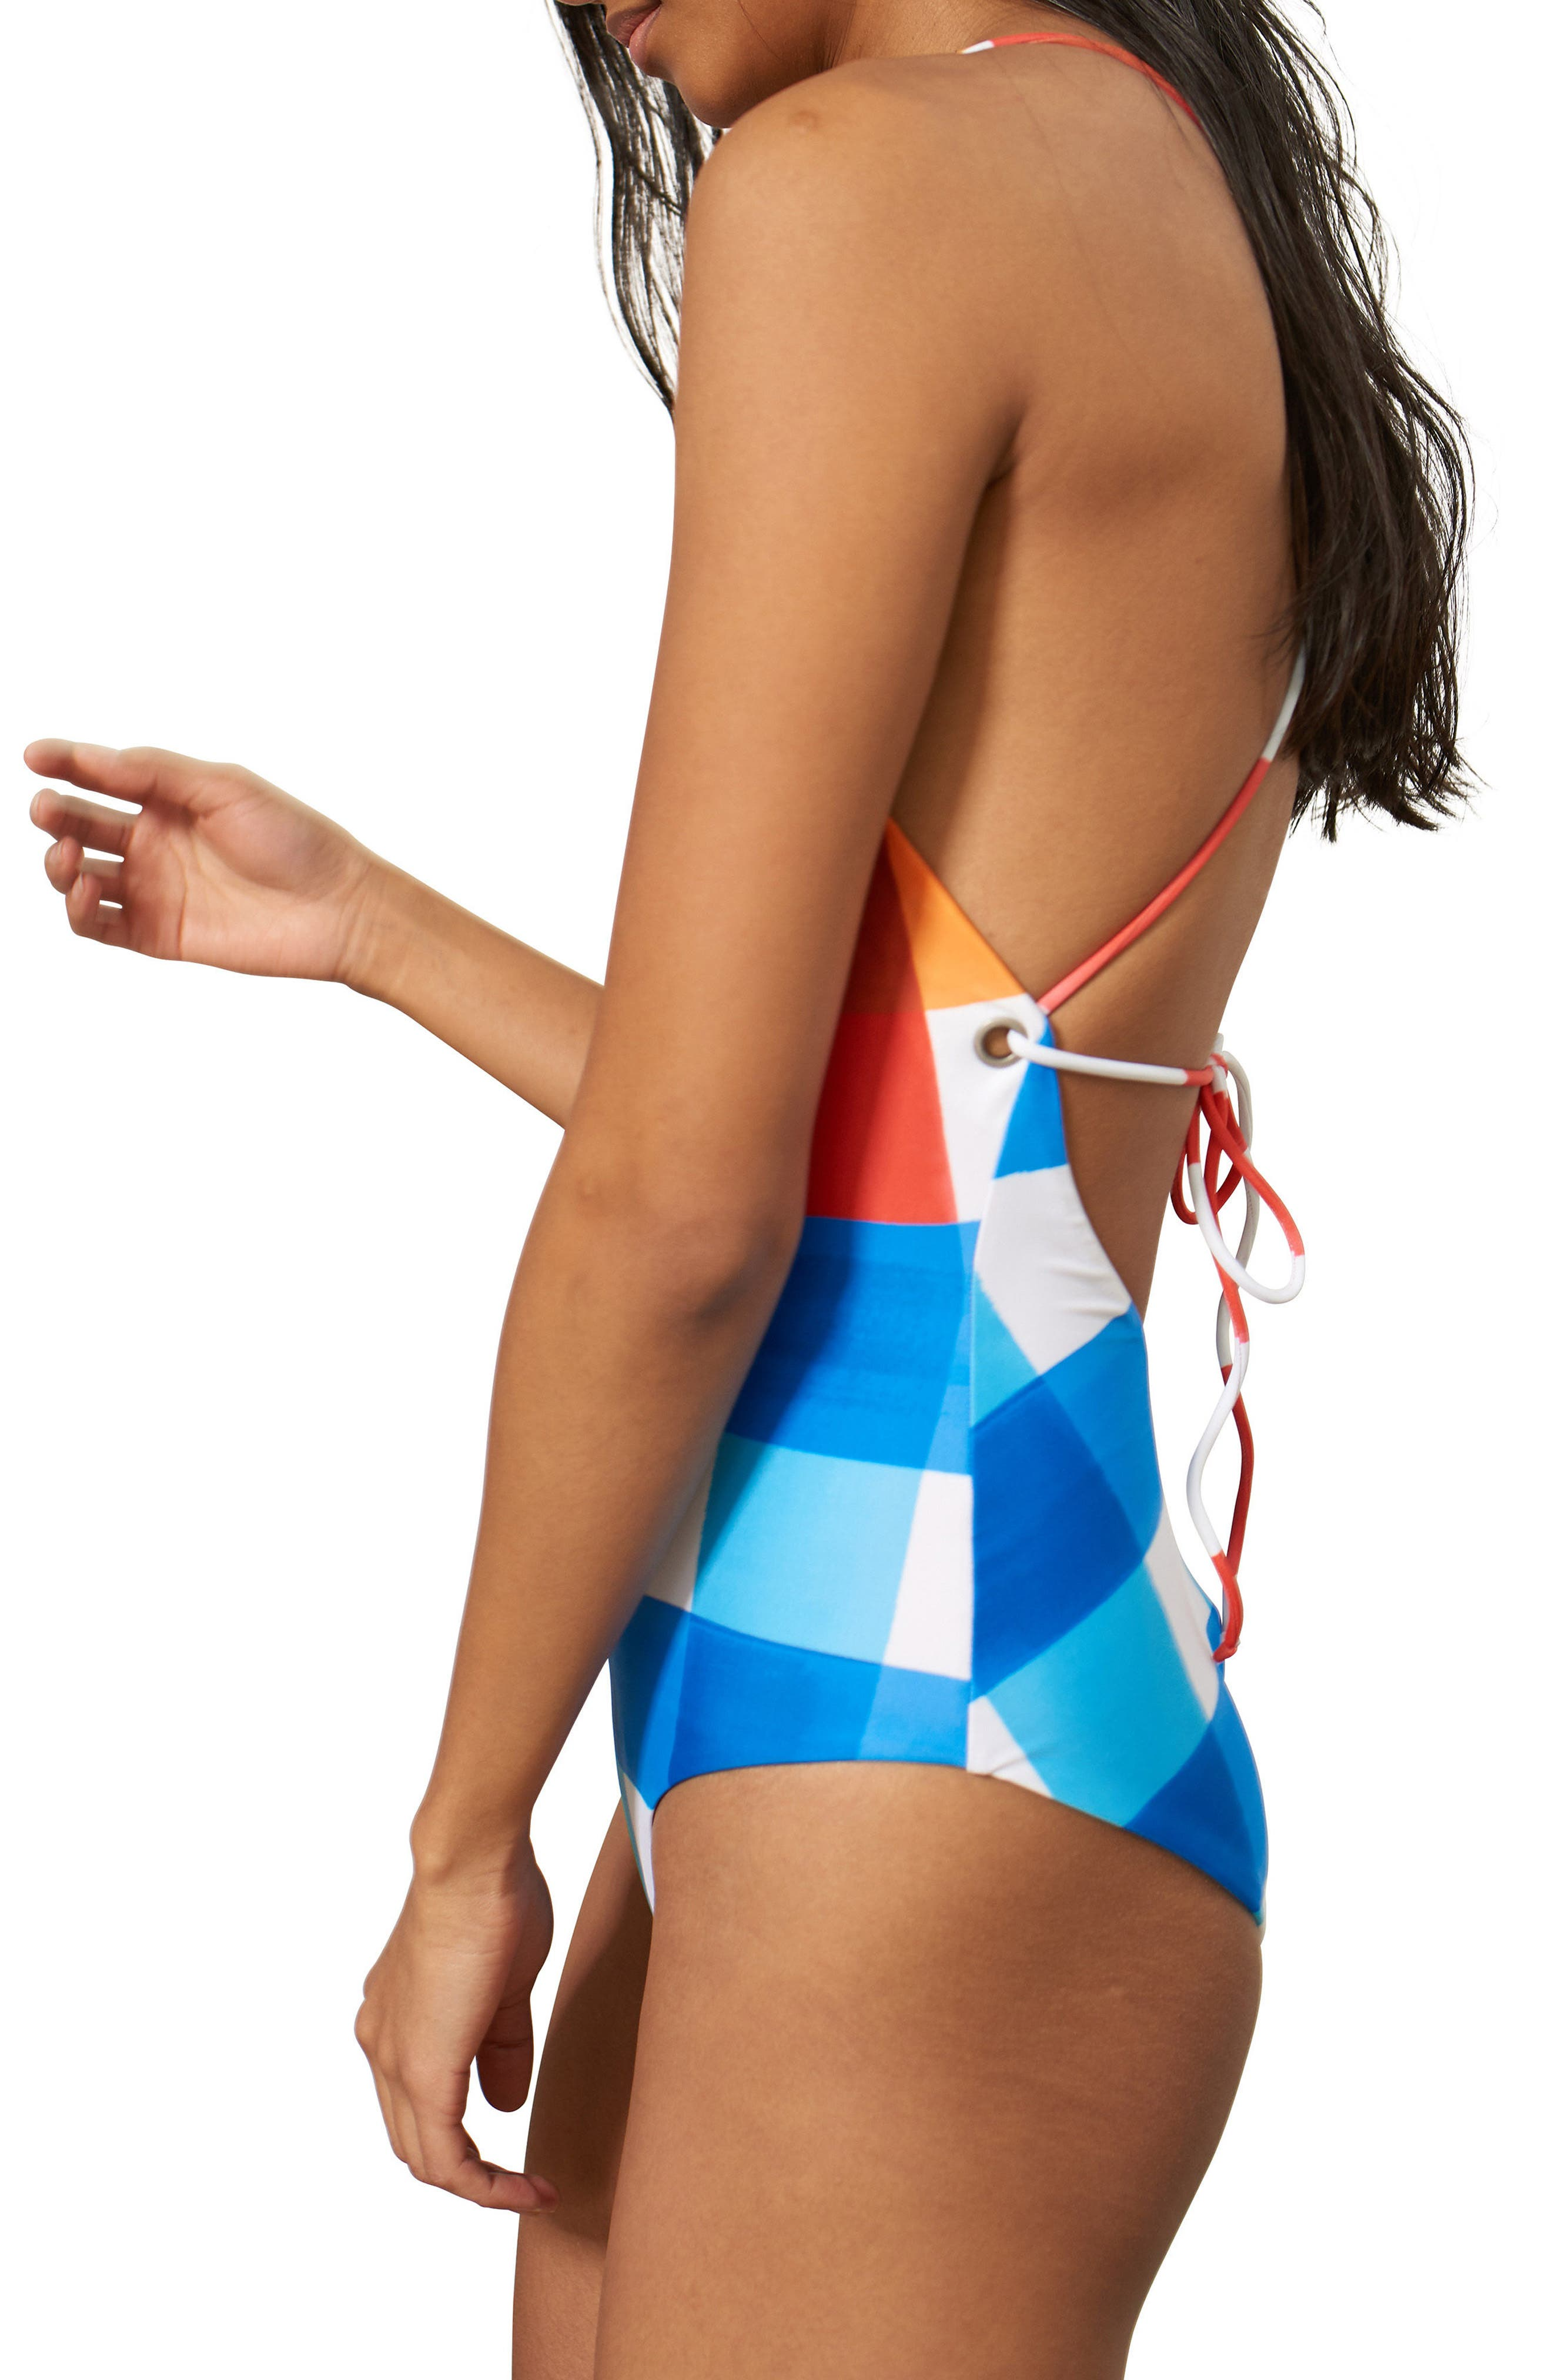 Olympia One-Piece Swimsuit,                             Alternate thumbnail 3, color,                             605